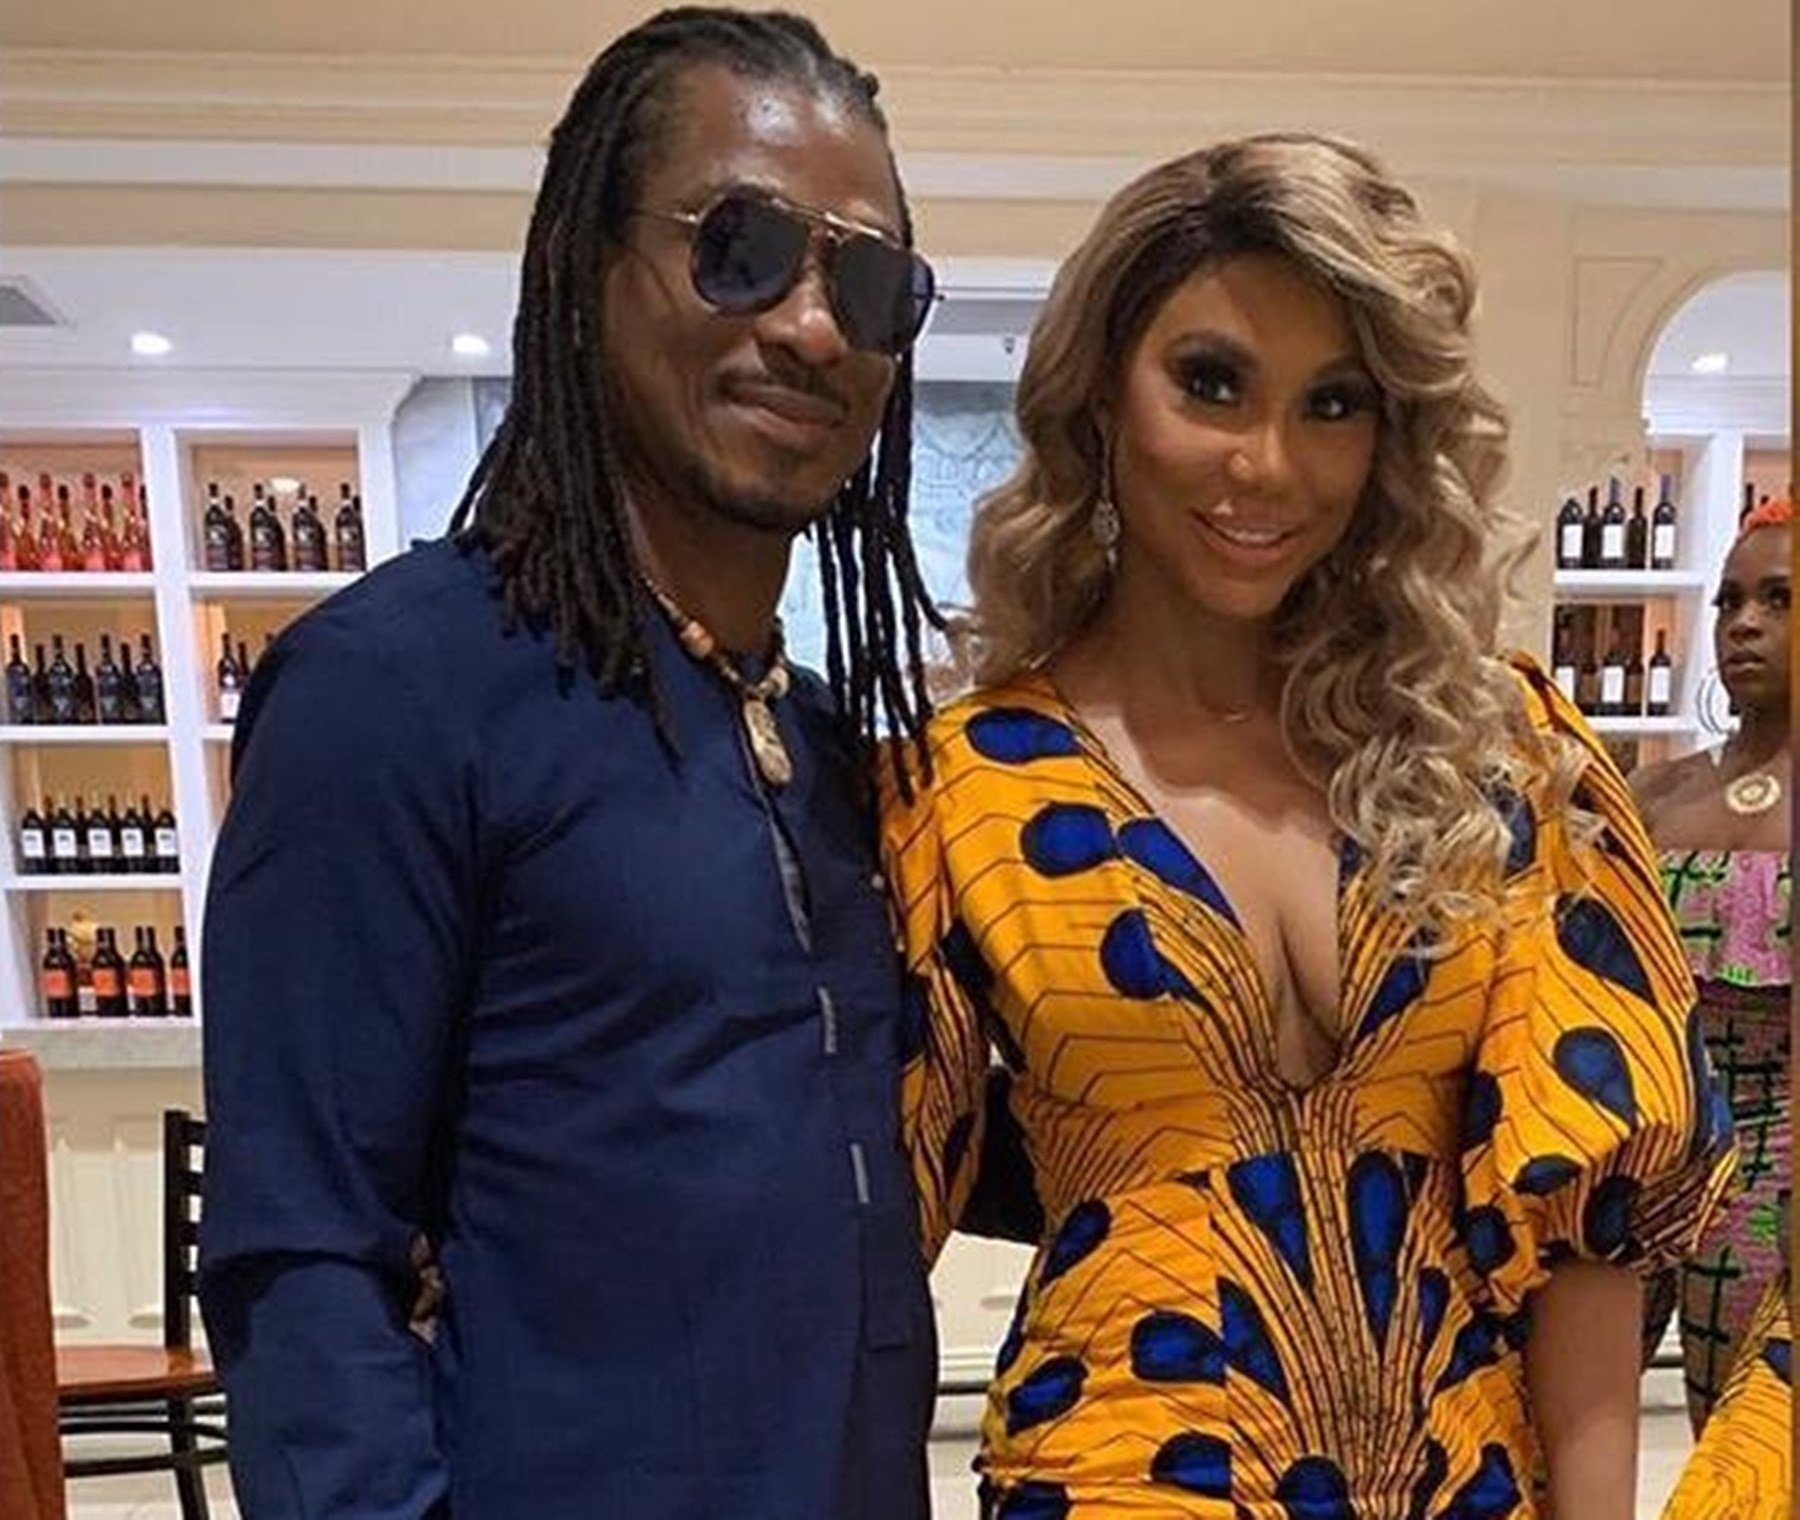 braxton-family-reportedly-puzzled-on-why-david-adefeso-mentioned-we-tv-in-frantic-911-call-noticed-a-change-in-tamar-since-they-started-dating